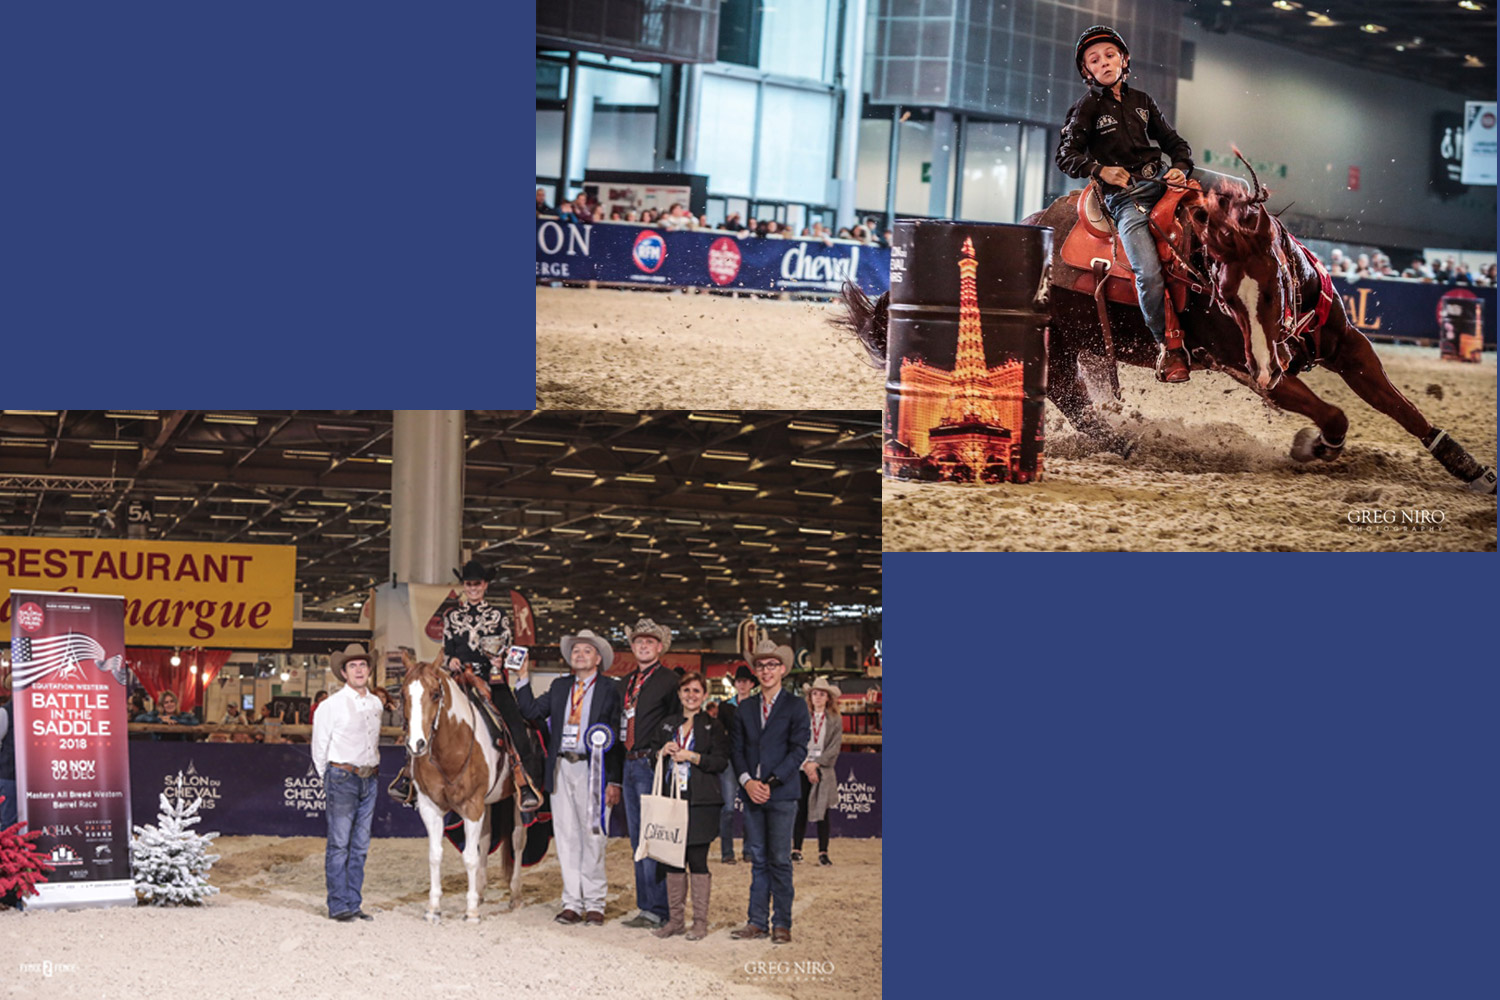 Salon Cheval de Paris (30 novembre / 2 décembre 2018) - Master All Breed & Championnat BBR : les gagnants… ©Grégory Niro